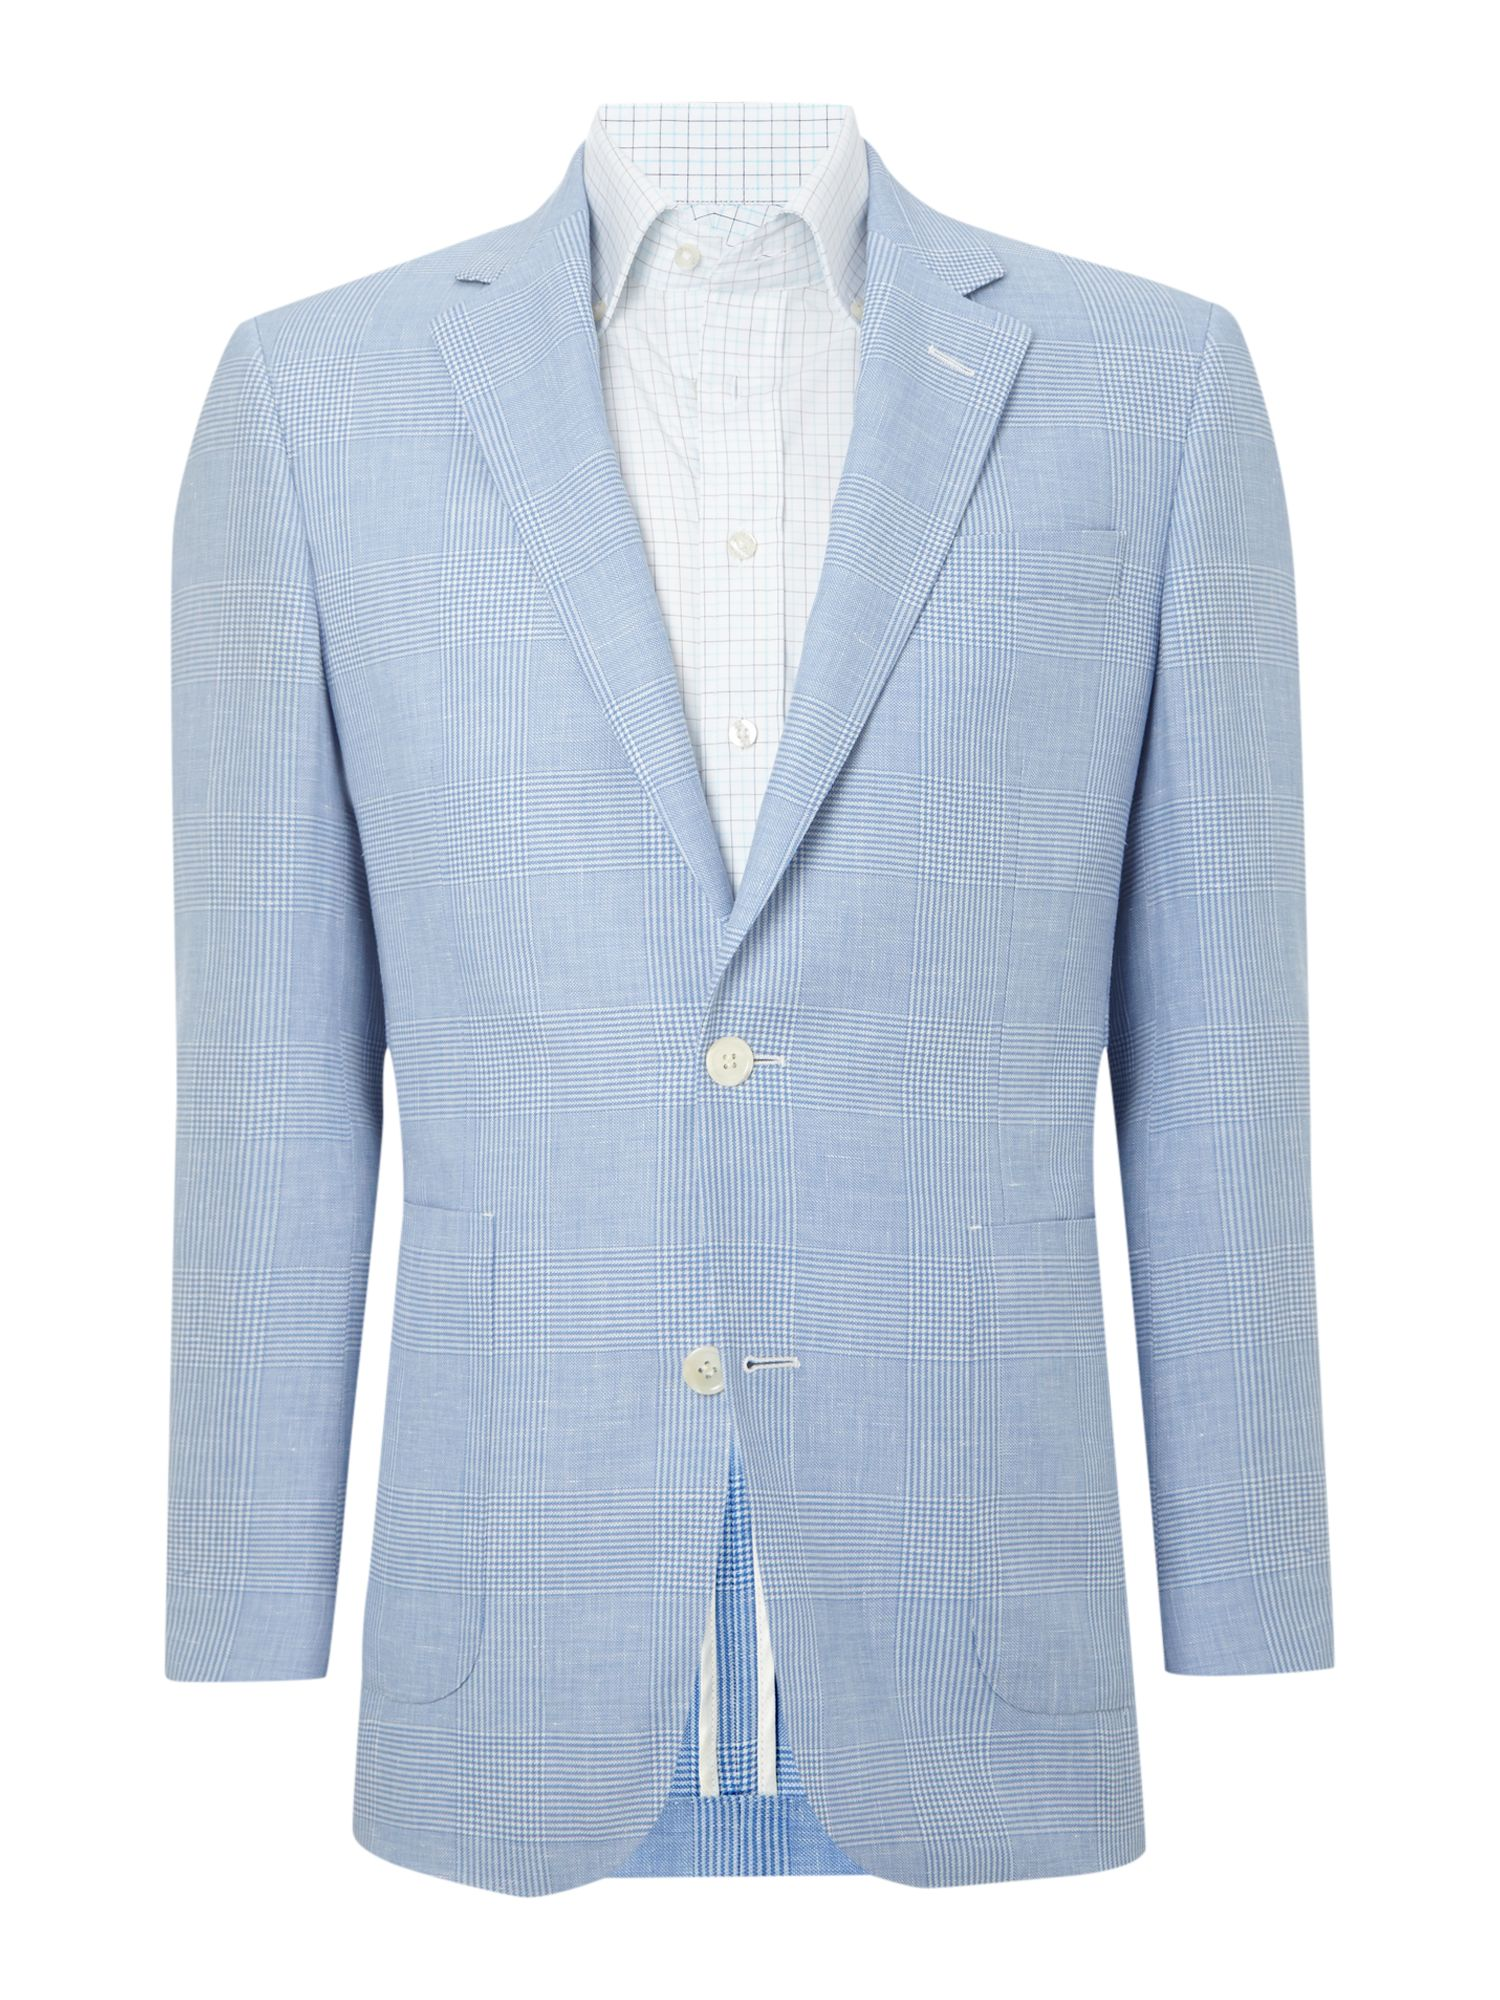 Prince of wales check formal blazer